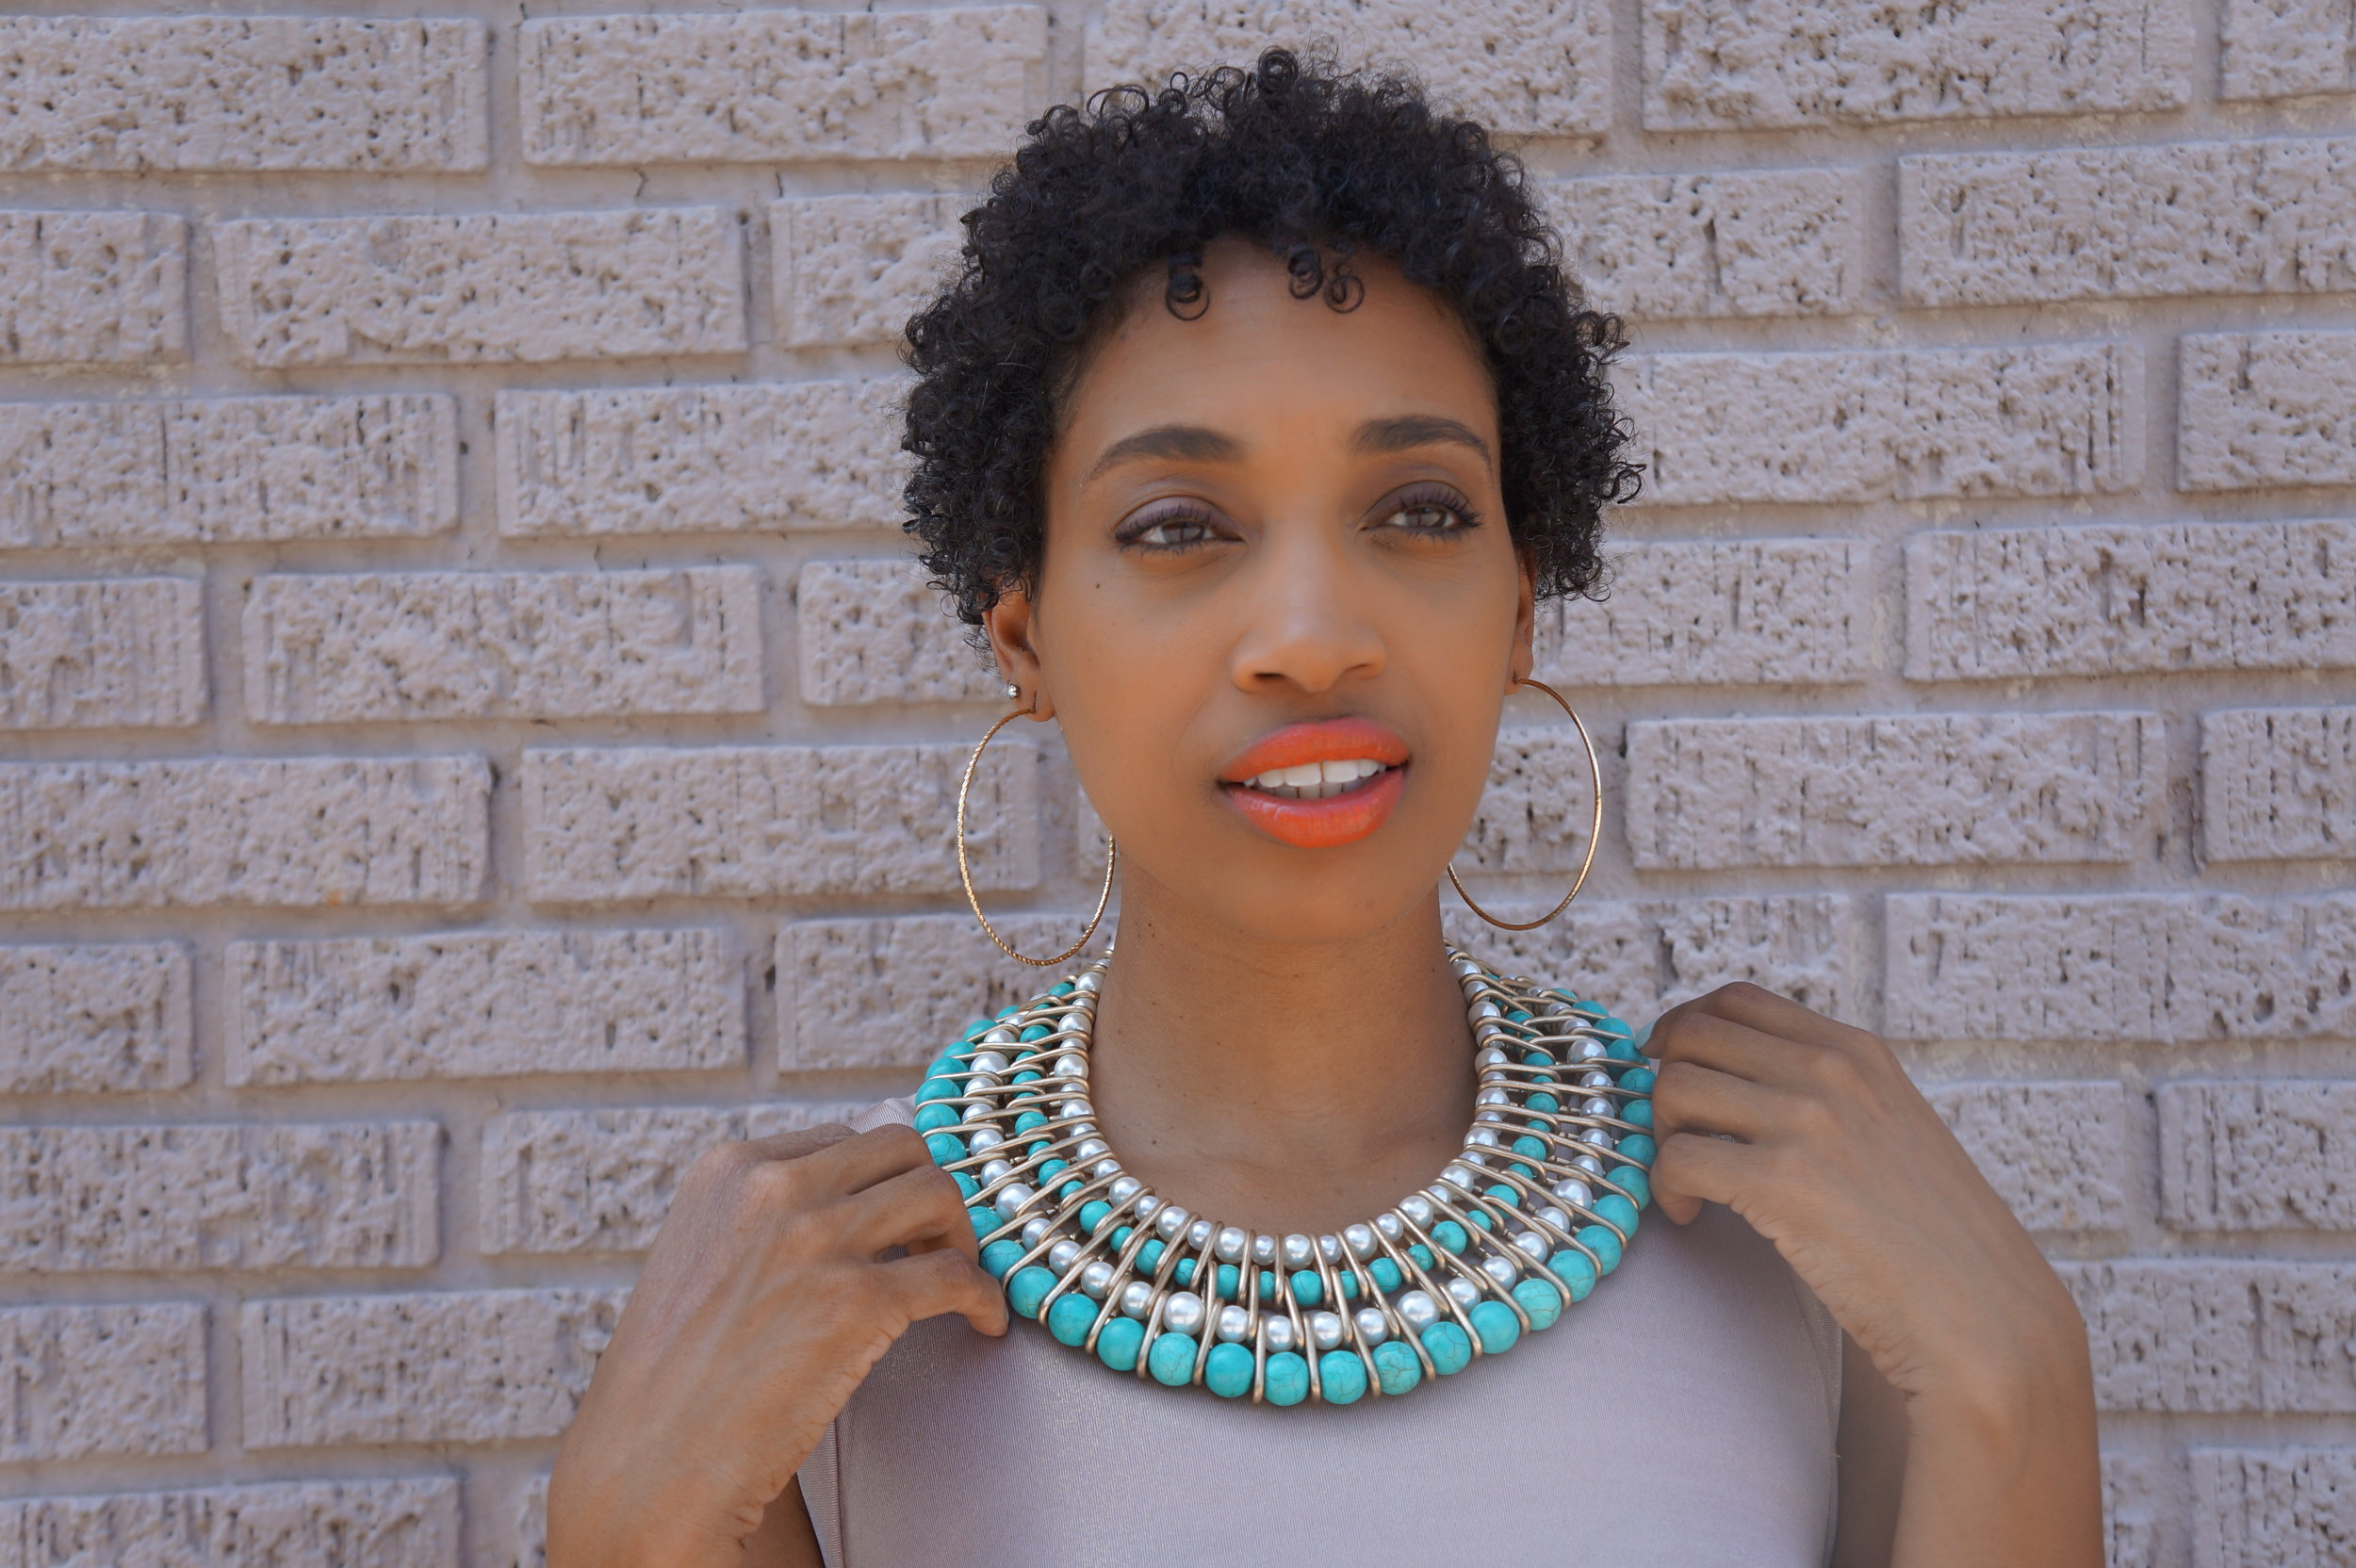 Andrea Fenise Memphis Fashion Blogger shares four ways to love yourself more every day